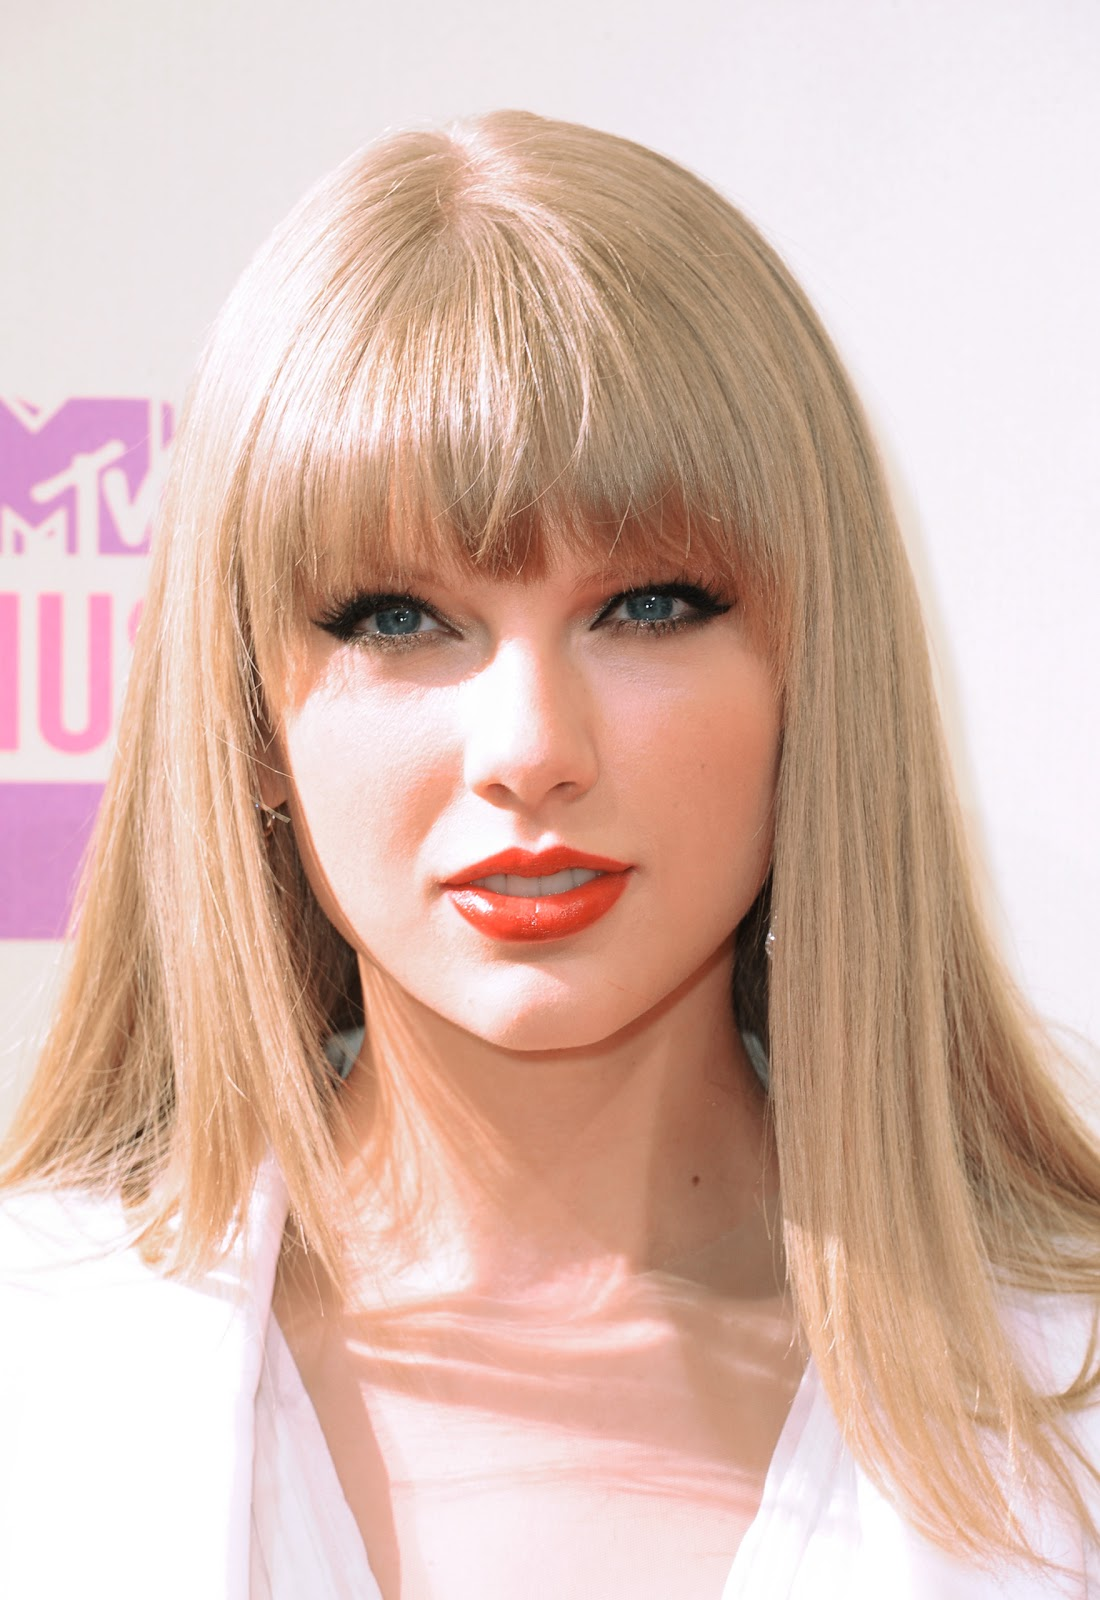 http://3.bp.blogspot.com/-7V1KGmYod_k/UE9pN5E87tI/AAAAAAAABgs/u9VB33w2GtM/s1600/Taylor+Swift+Red+Carpet+Look.jpg